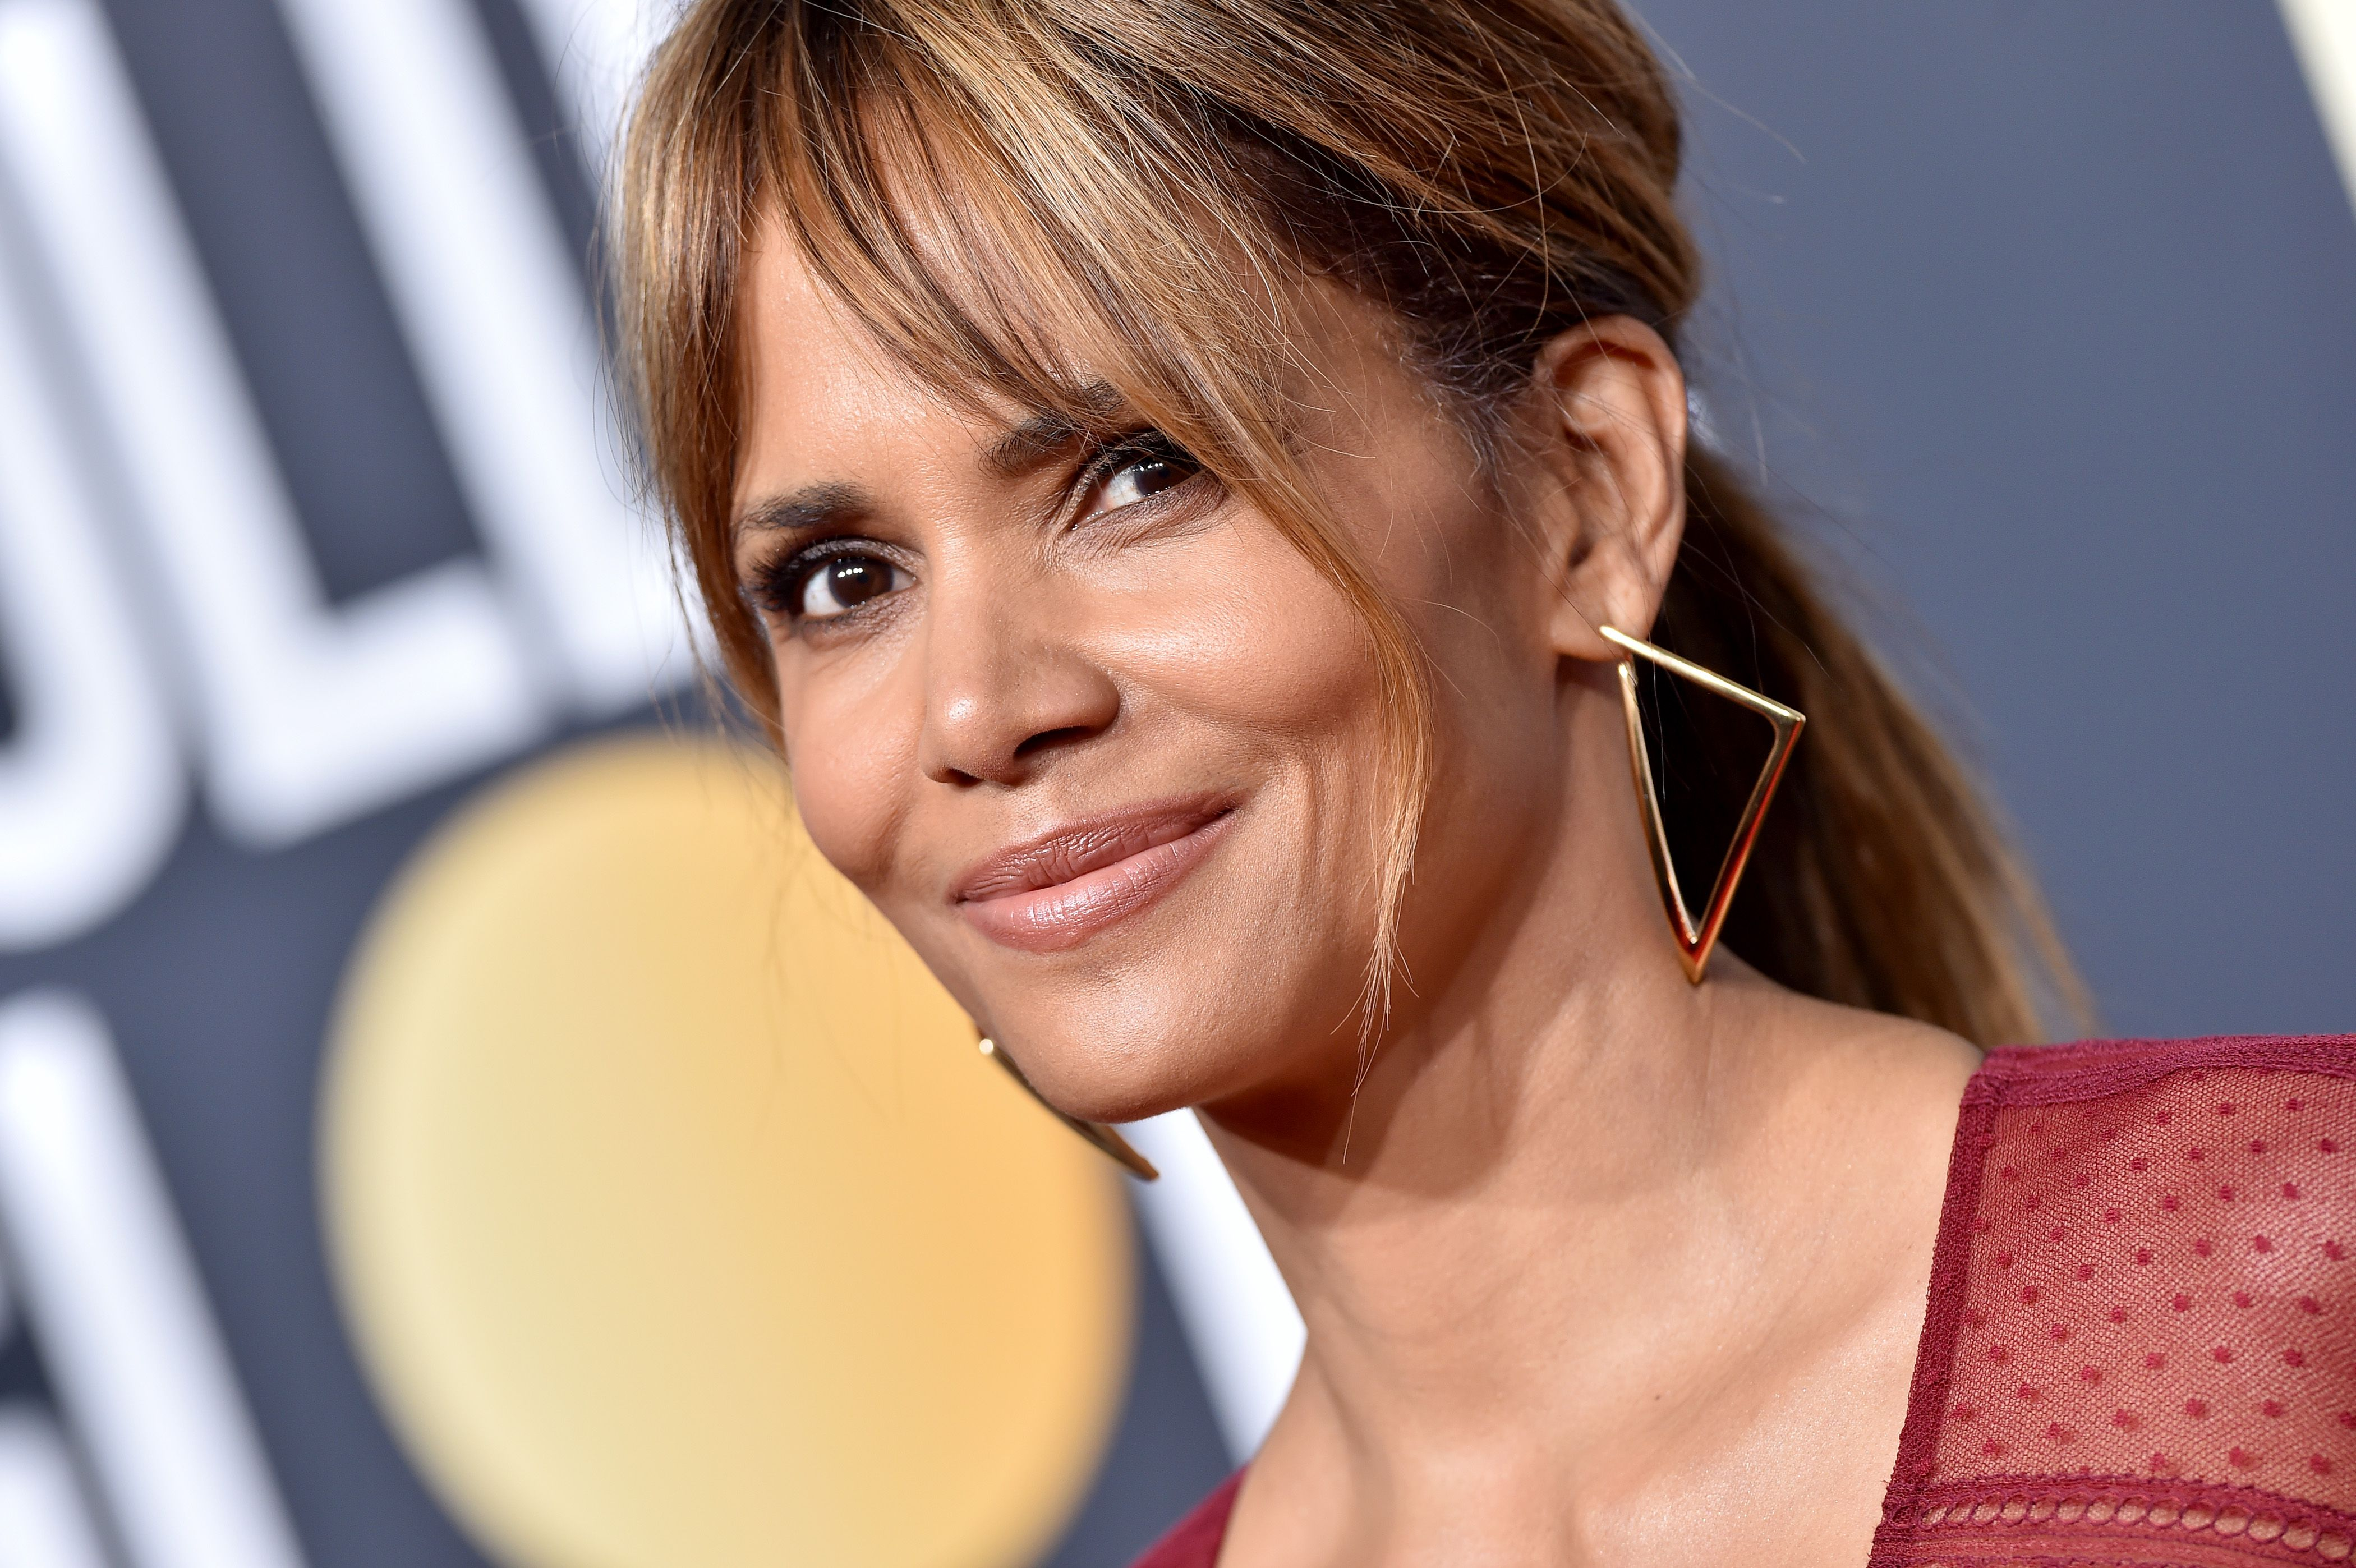 Halle Berry Shares the Face Mask She Uses for a Brighter Complexion - Prevention.com